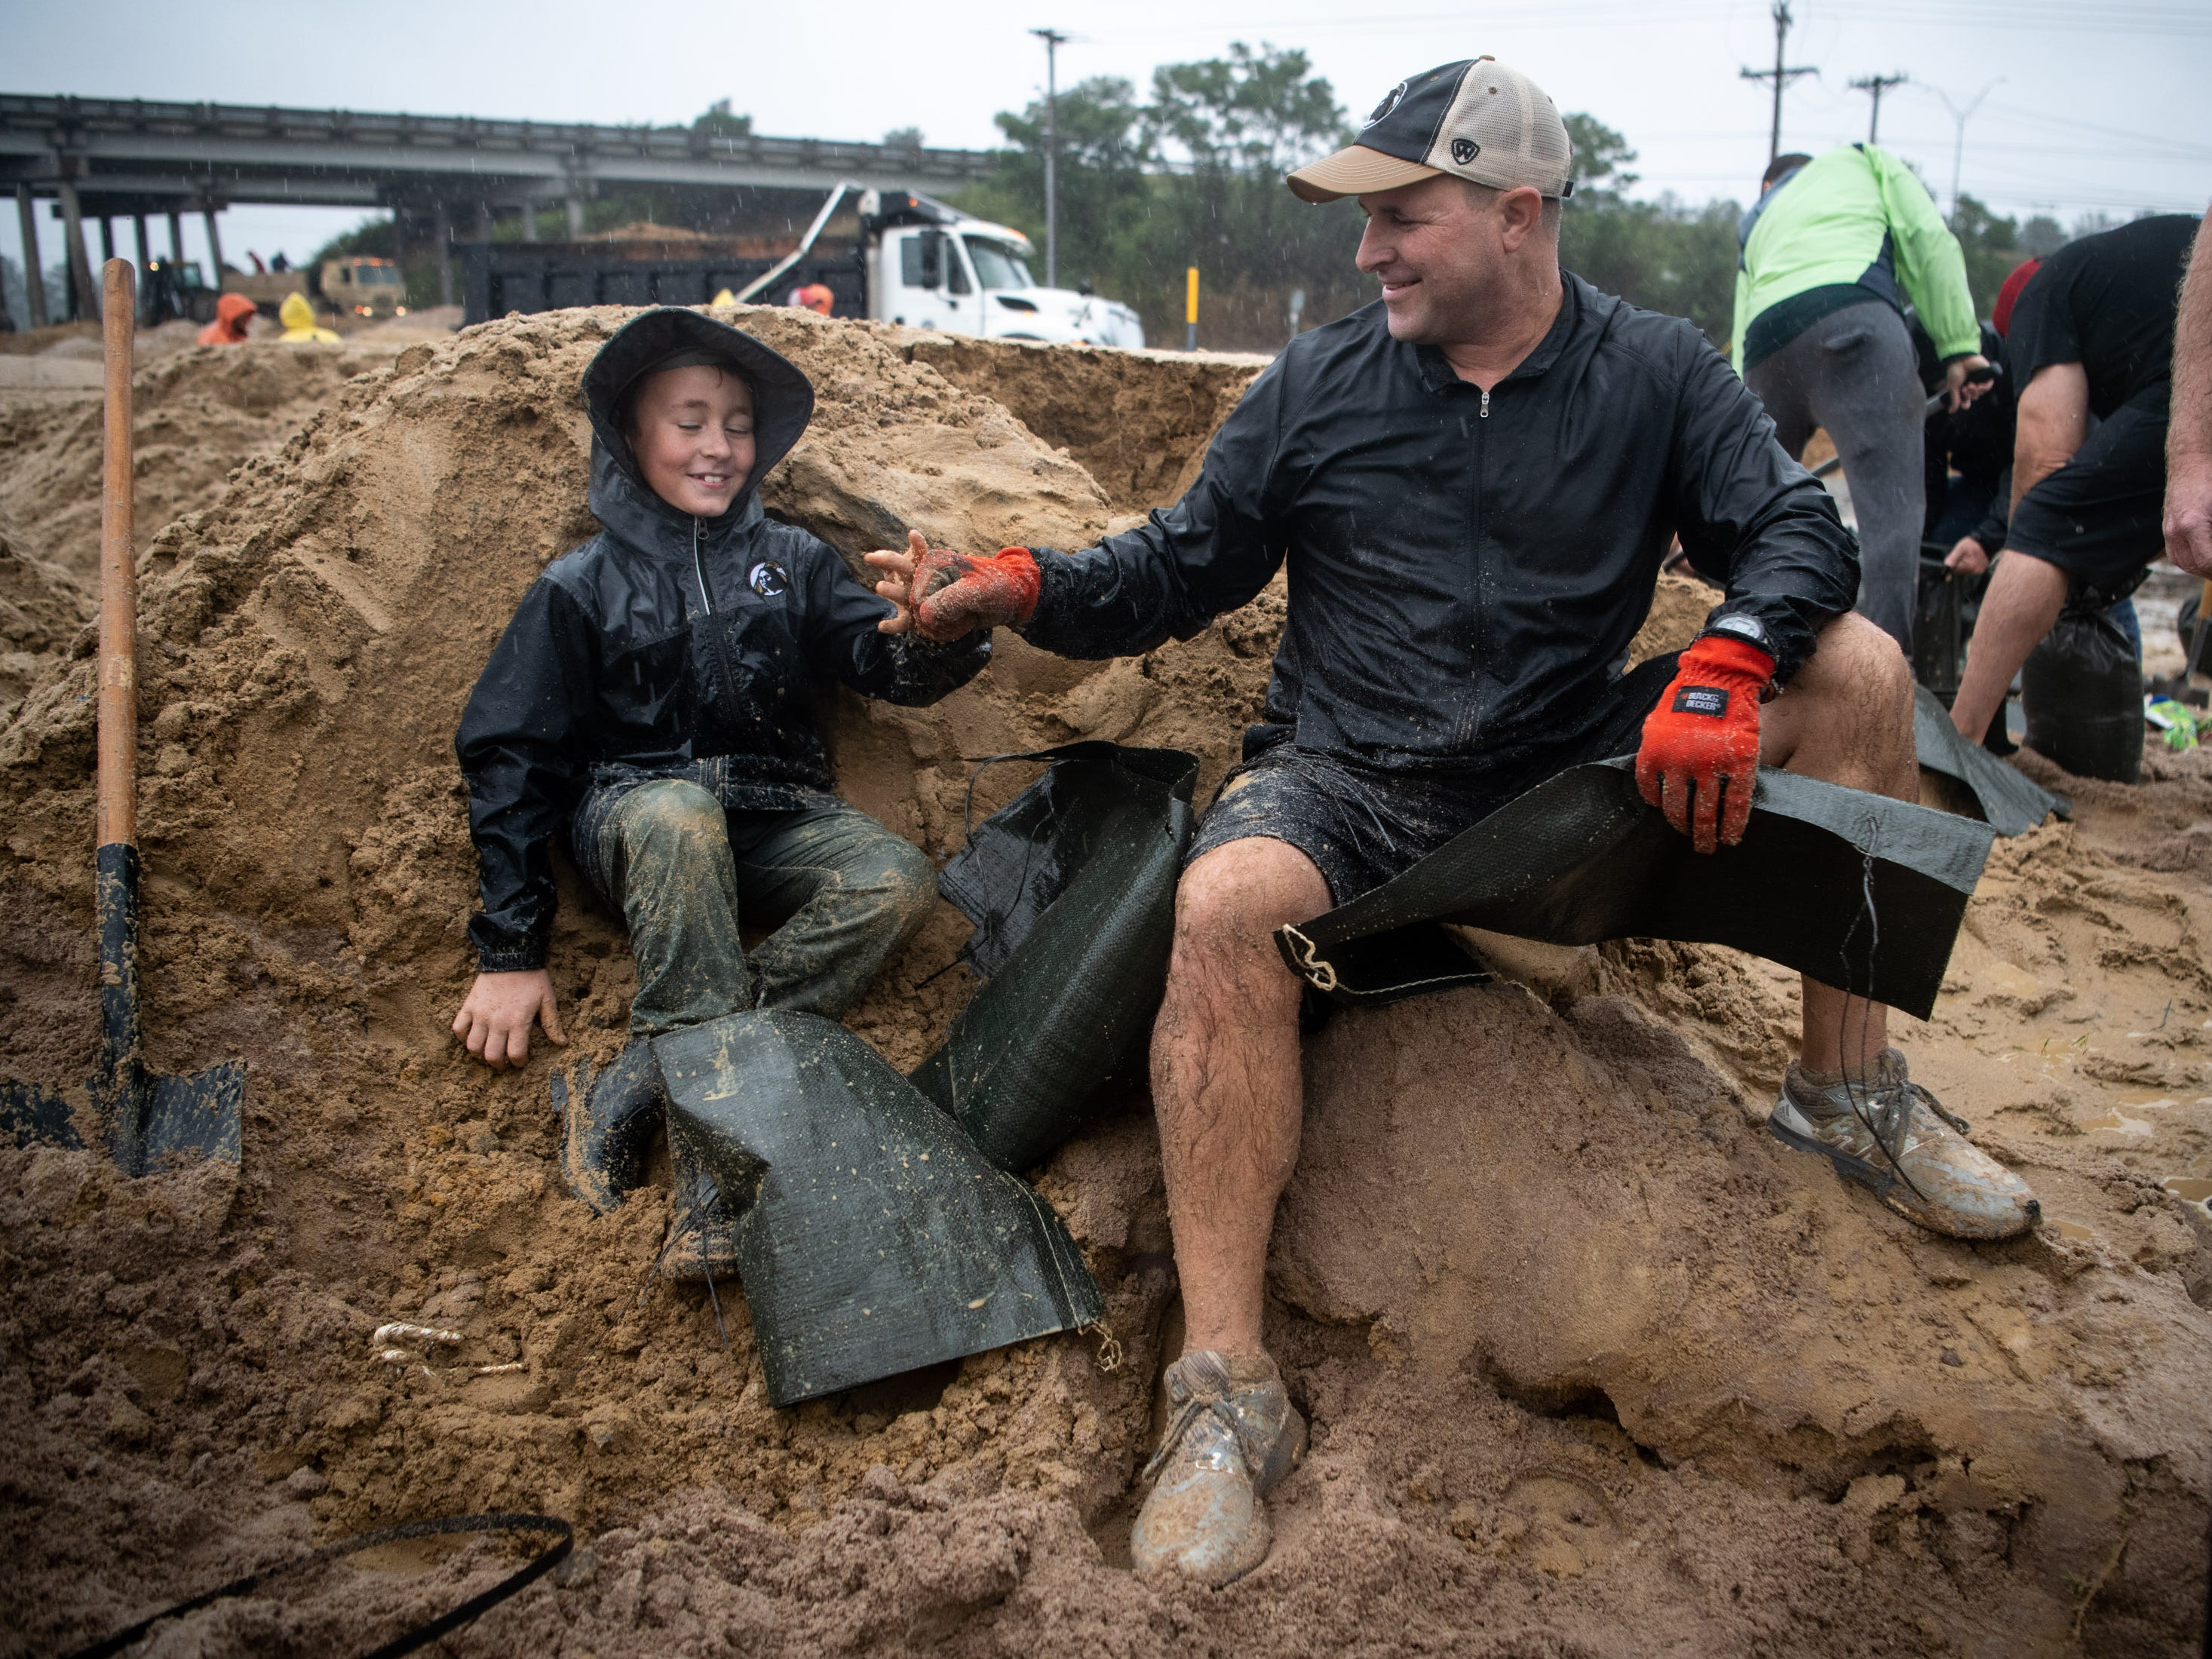 Volunteers Rivers Malcolm, left, 9, and Ben Miller, right, bump fists while filling sandbags to help reinforce a low-lying area as Hurricane Florence approaches Lumberton, N.C., Friday, Sept. 14, 2018.